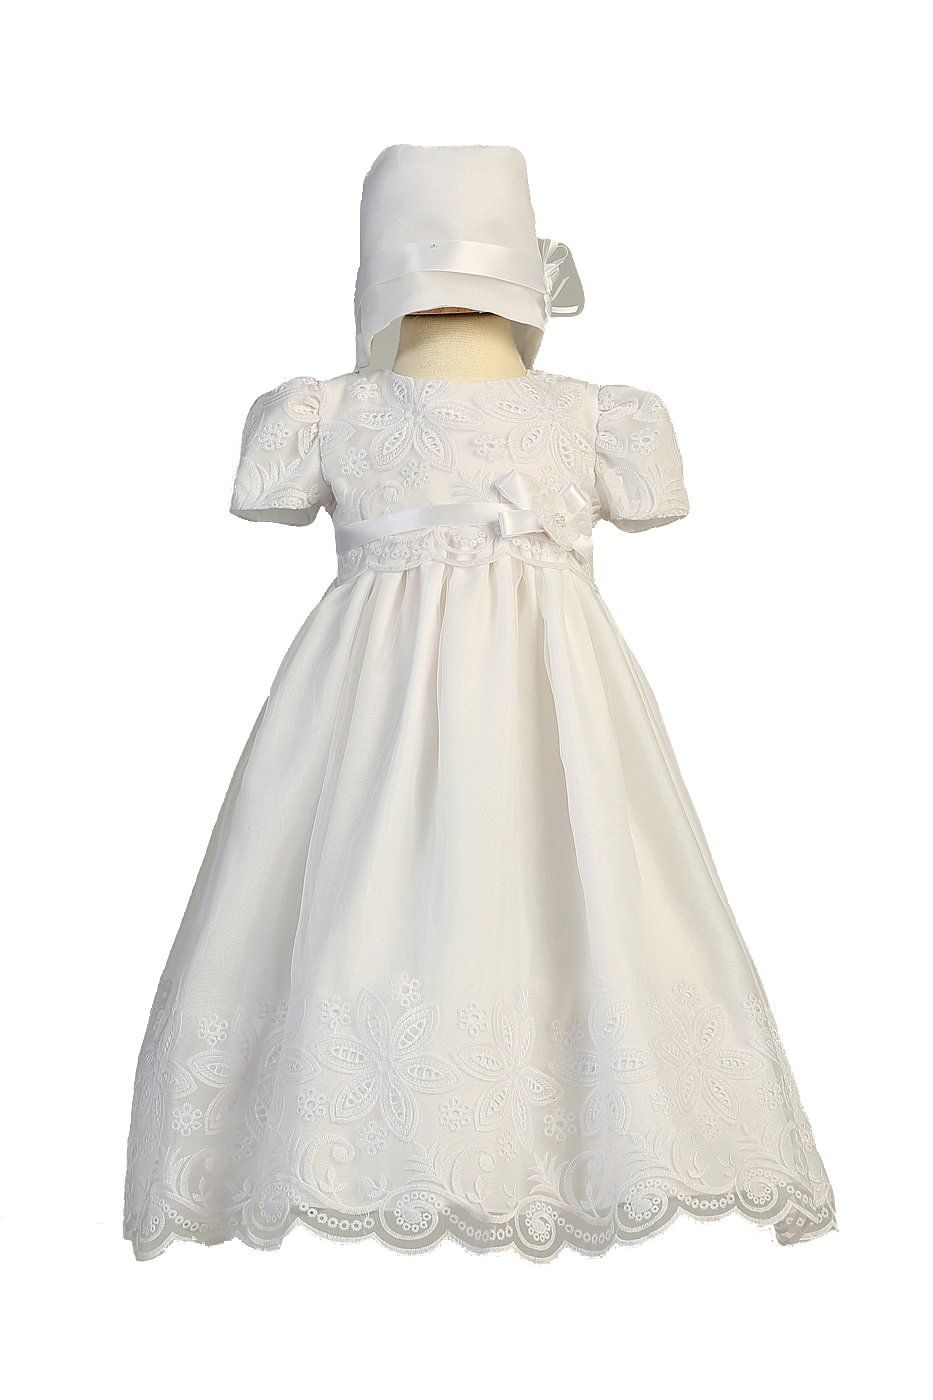 d99822cc2d Long White Classy Embroidered Organza Baby Girl Christening Baptism Special  Occasion Newborn Dress Gown with Matching Hat - XS (0-3 Month